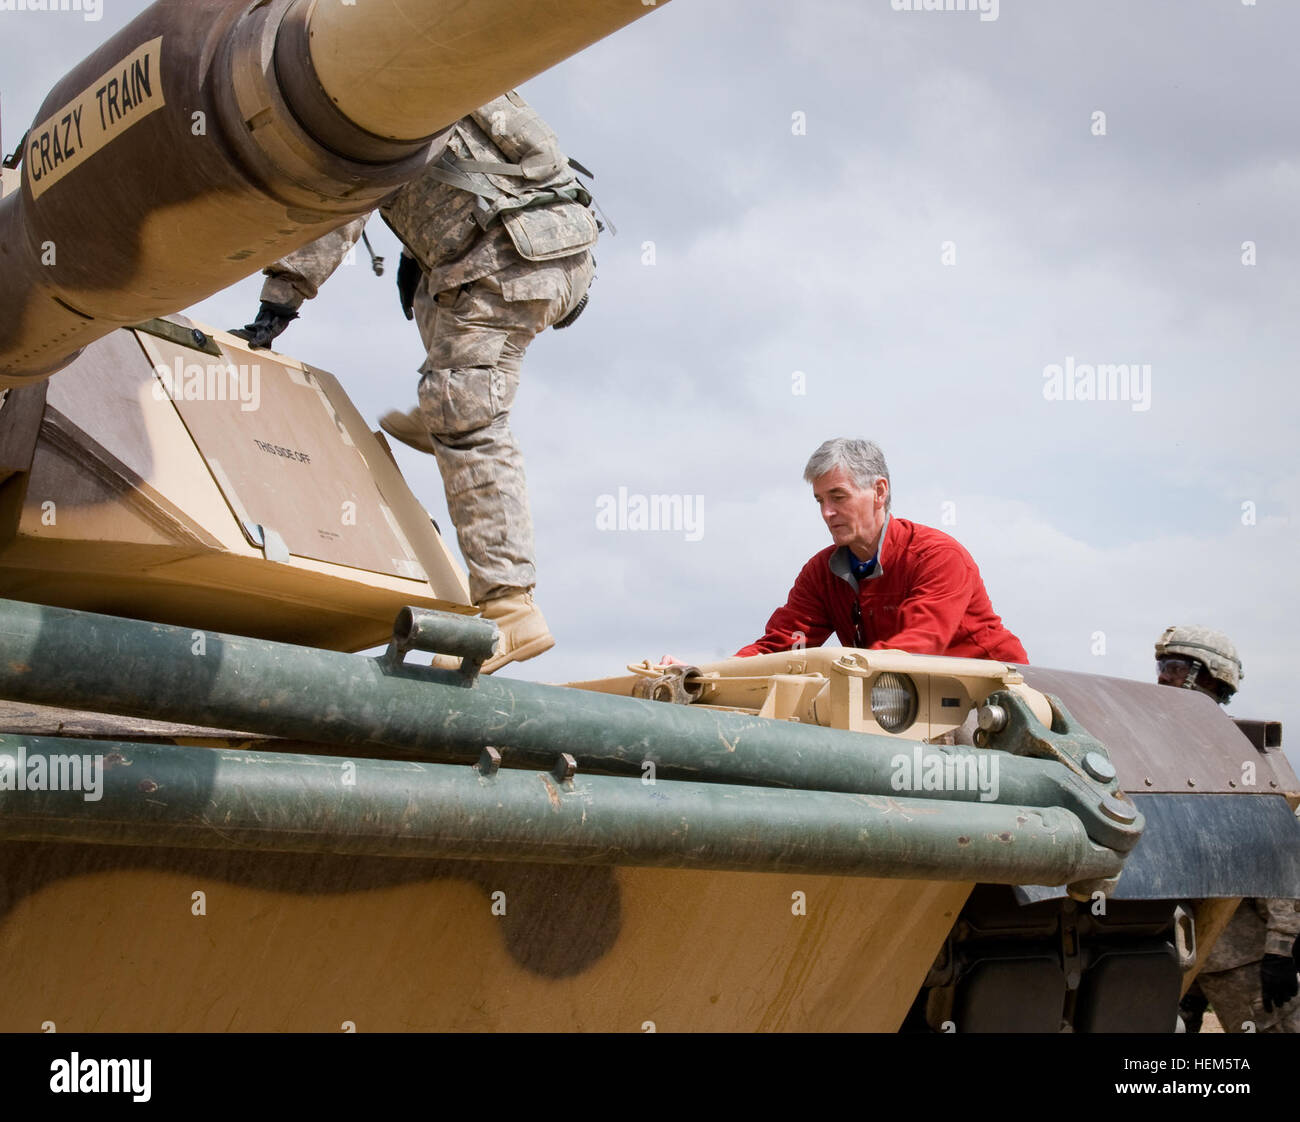 Secretary John McHugh, the 21st secretary of the Army, climbs onto an Abrams Tank, while visiting 2nd Heavy Brigade Stock Photo